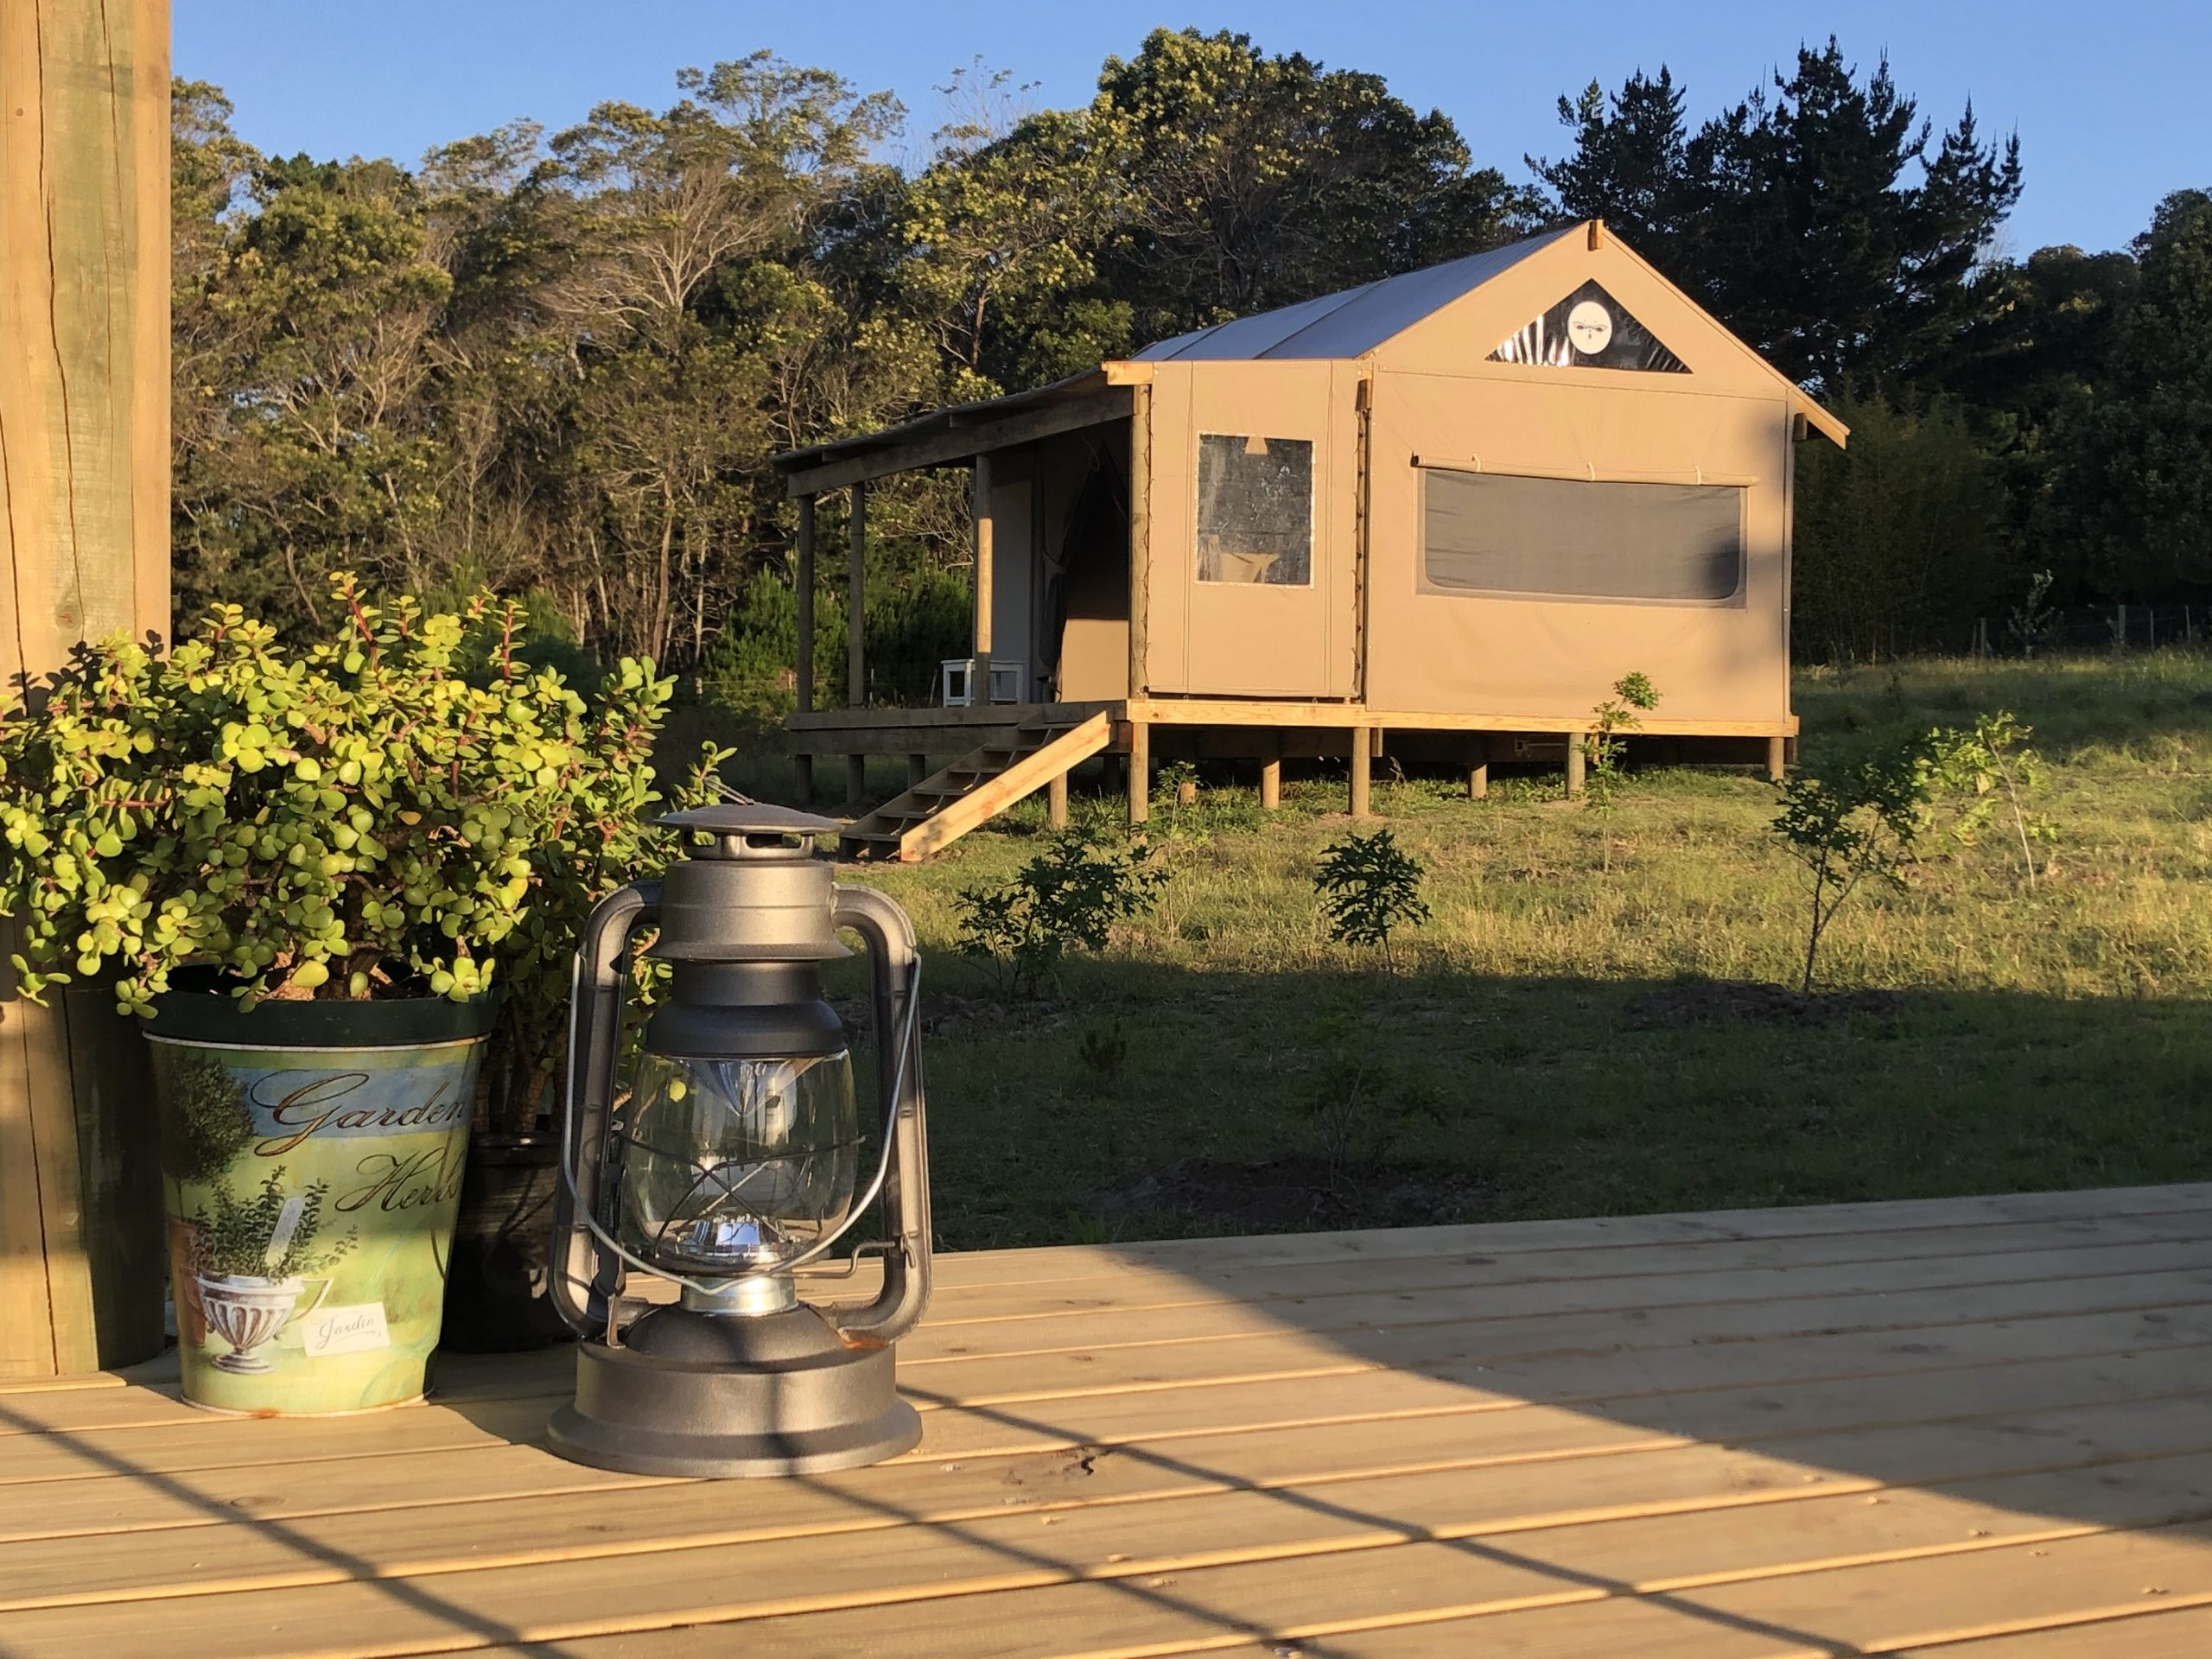 FireFly Luxury Tents are spaciously designed glamping tents, set in a field of dreams, in Harkerville, just outside Plettenberg Bay in the Western Cape.